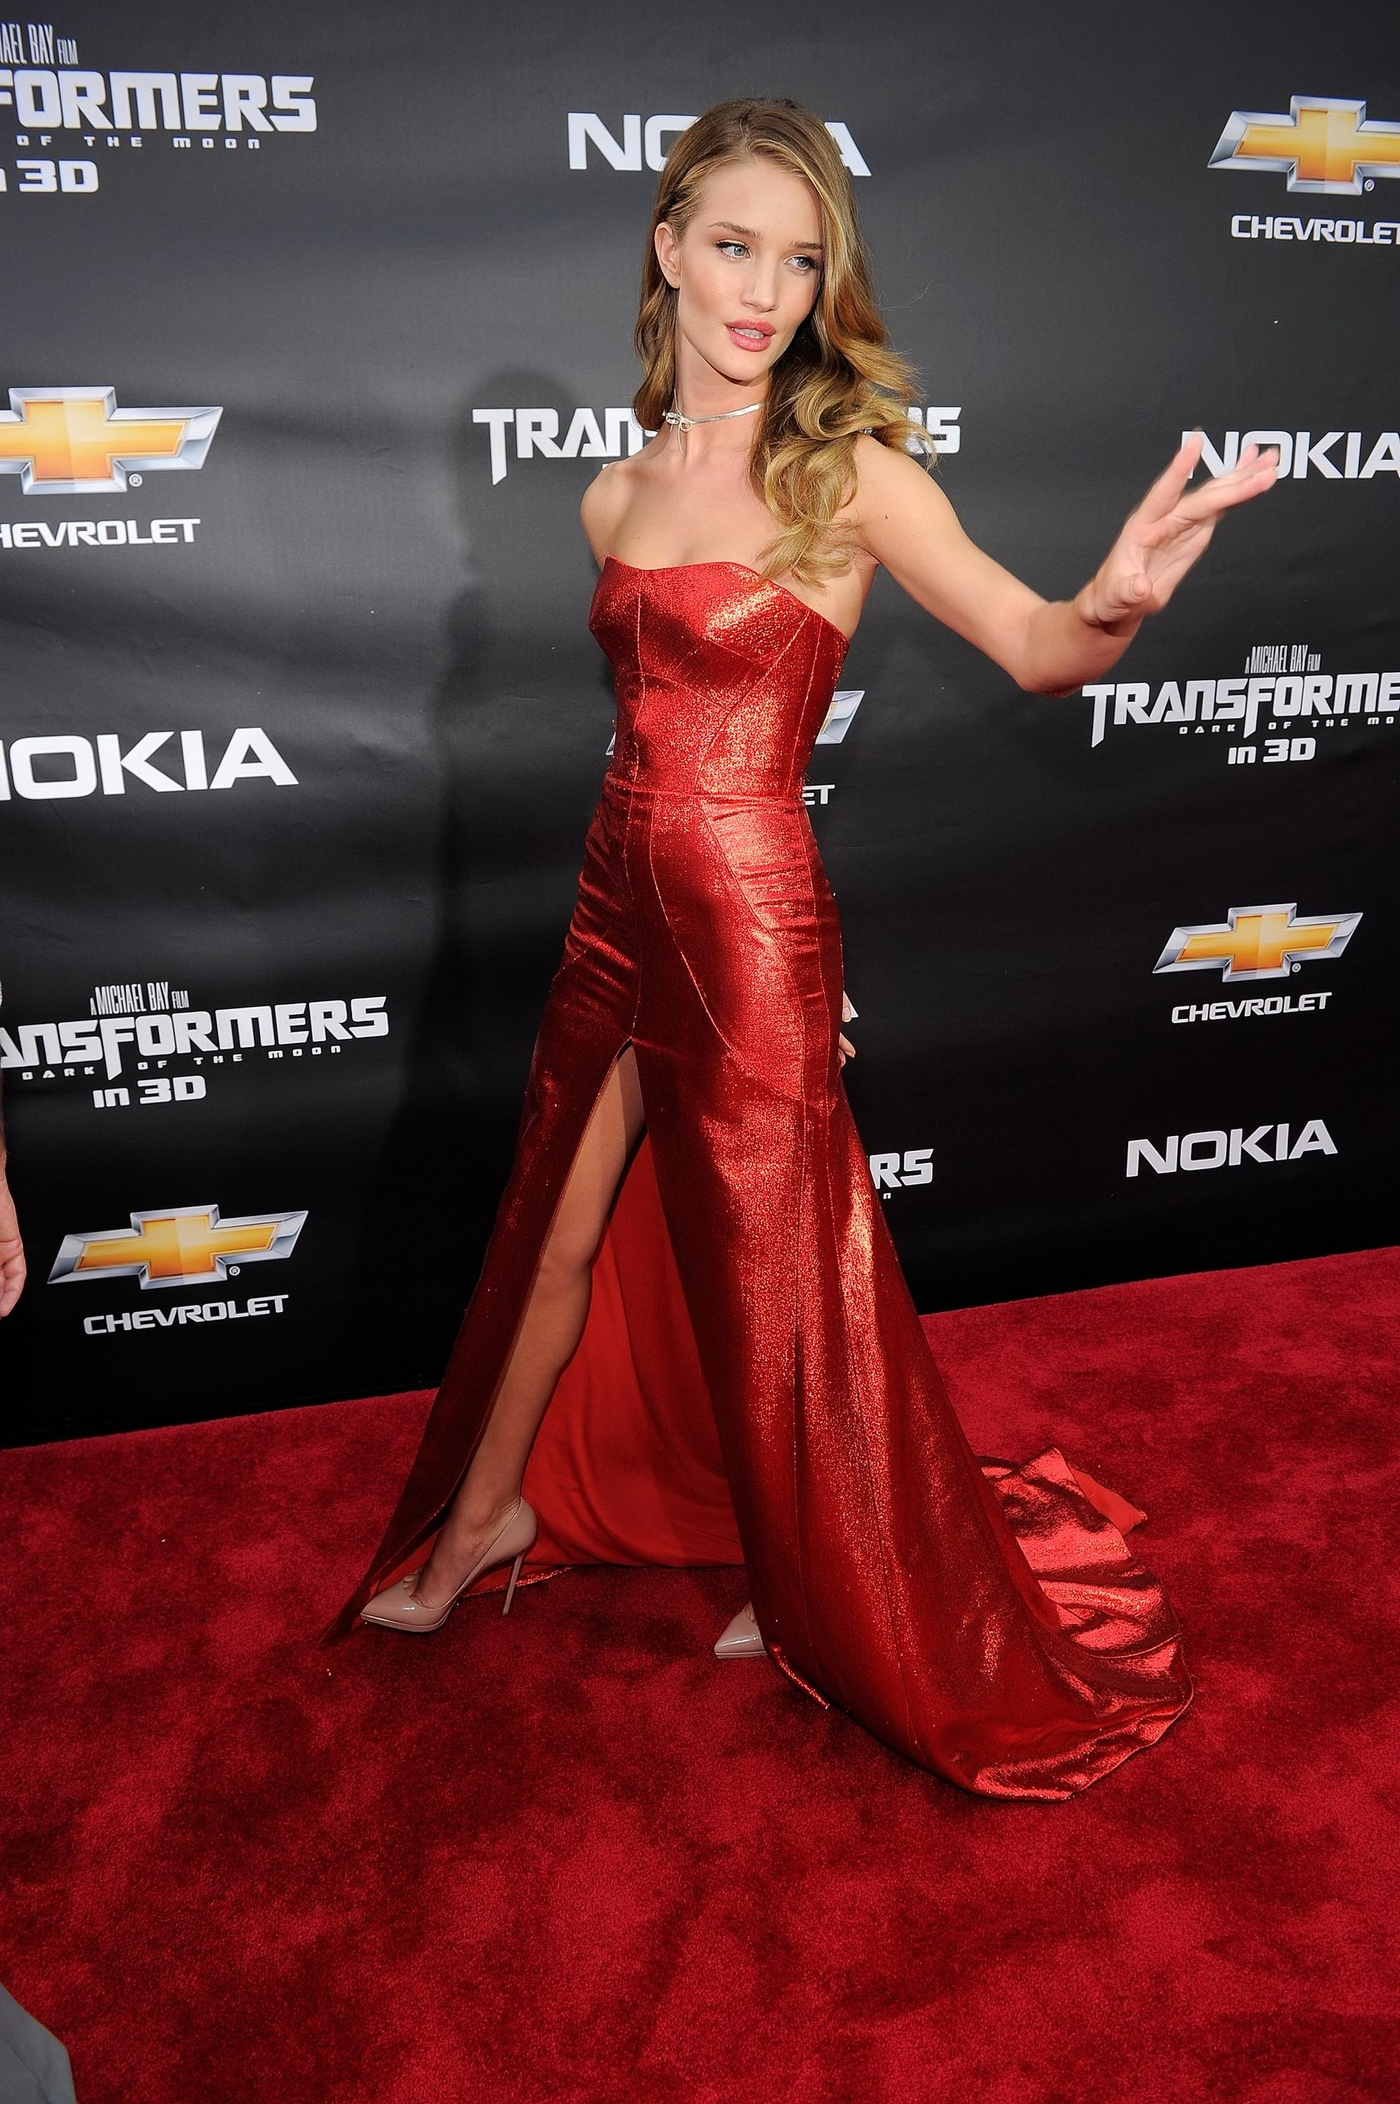 Kollywood Wallpapers Hd Rosie Huntington Whiteley In Red Dress At Transformers 3